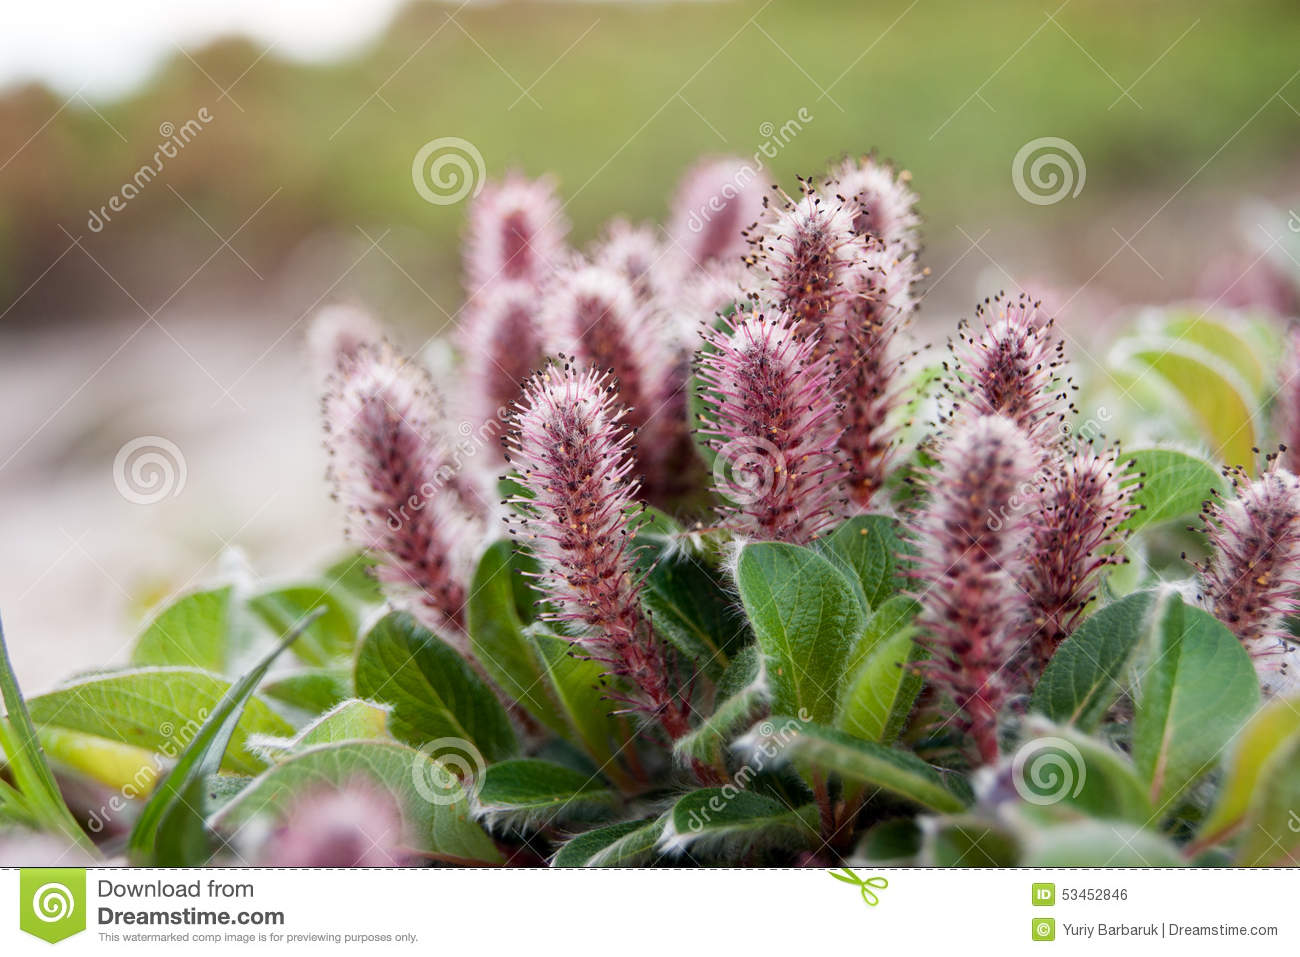 Salix Arctica (Arctic Willow) Stock Photo.